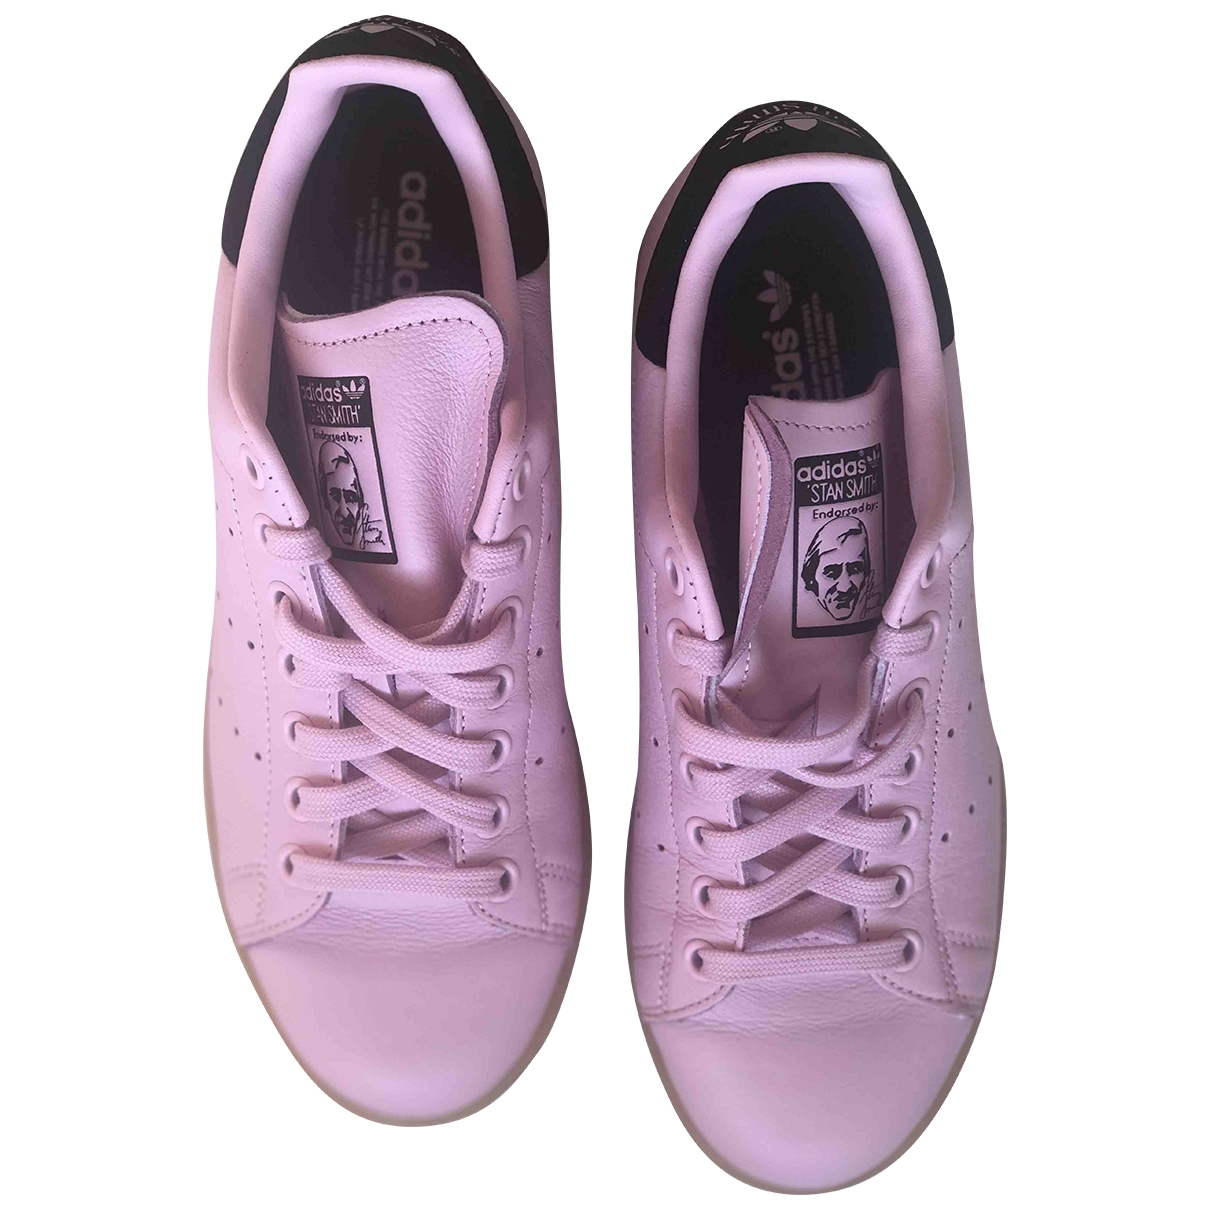 Adidas Stan Smith Pink Leather Trainers for Women 38 EU